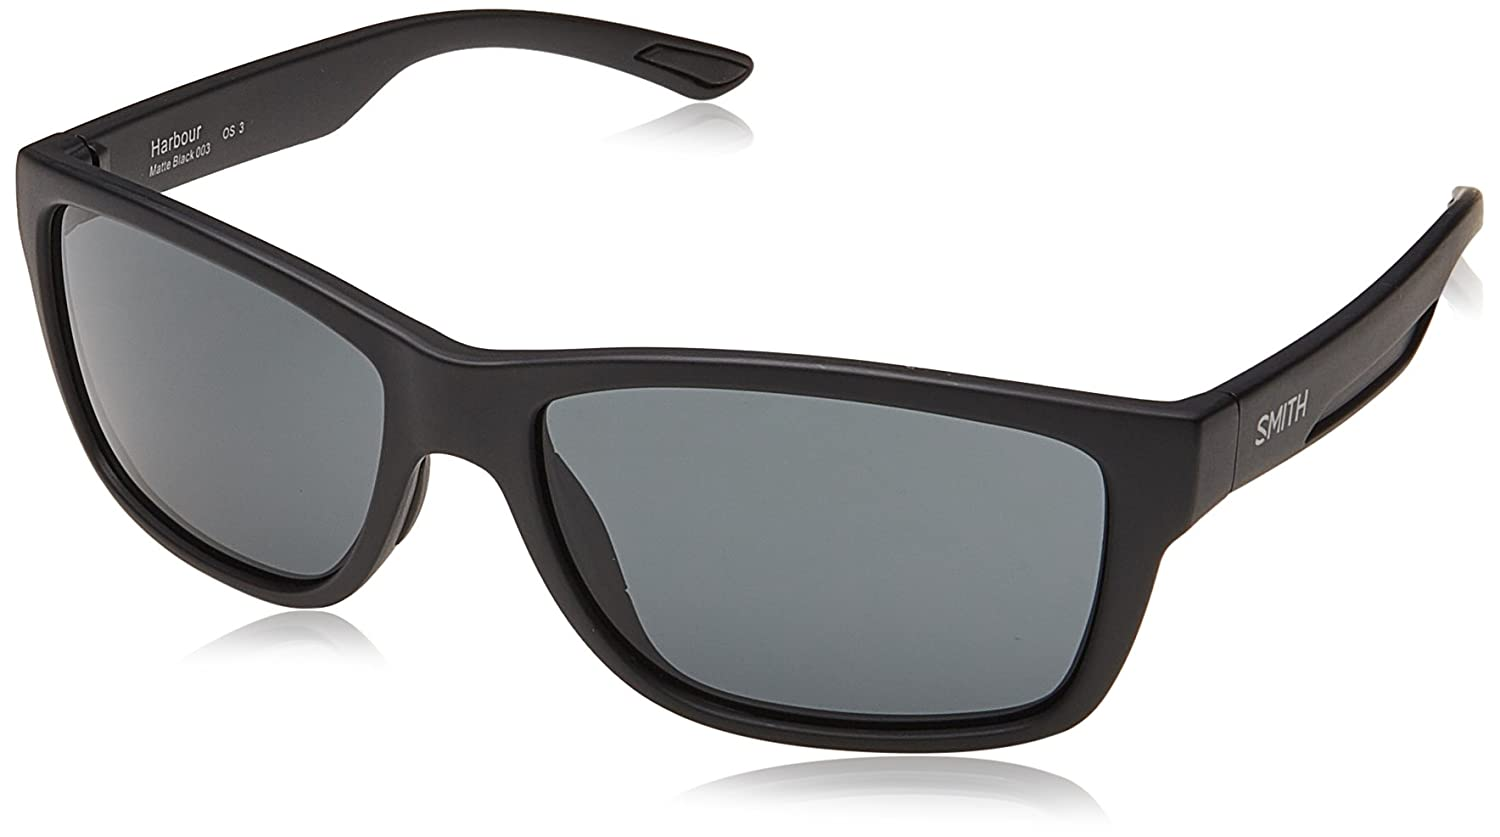 Smith Harbour IR 003 58 Gafas de Sol, Negro (Matt Black/Grey Bluee), Hombre